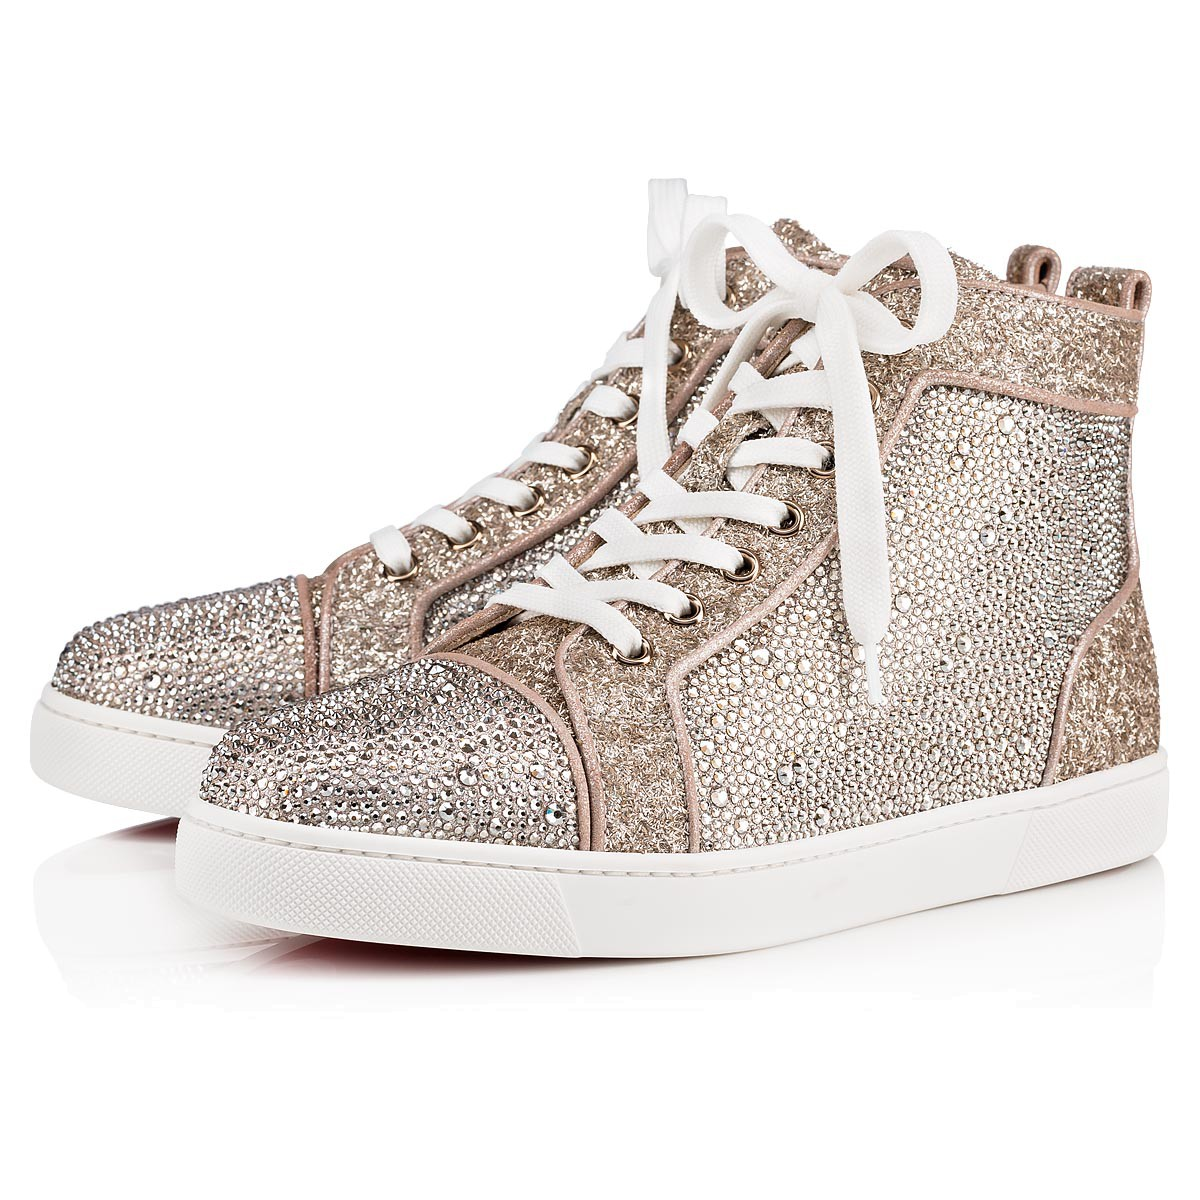 Women Shoes - Louis Orlato Wo Strass - Christian Louboutin